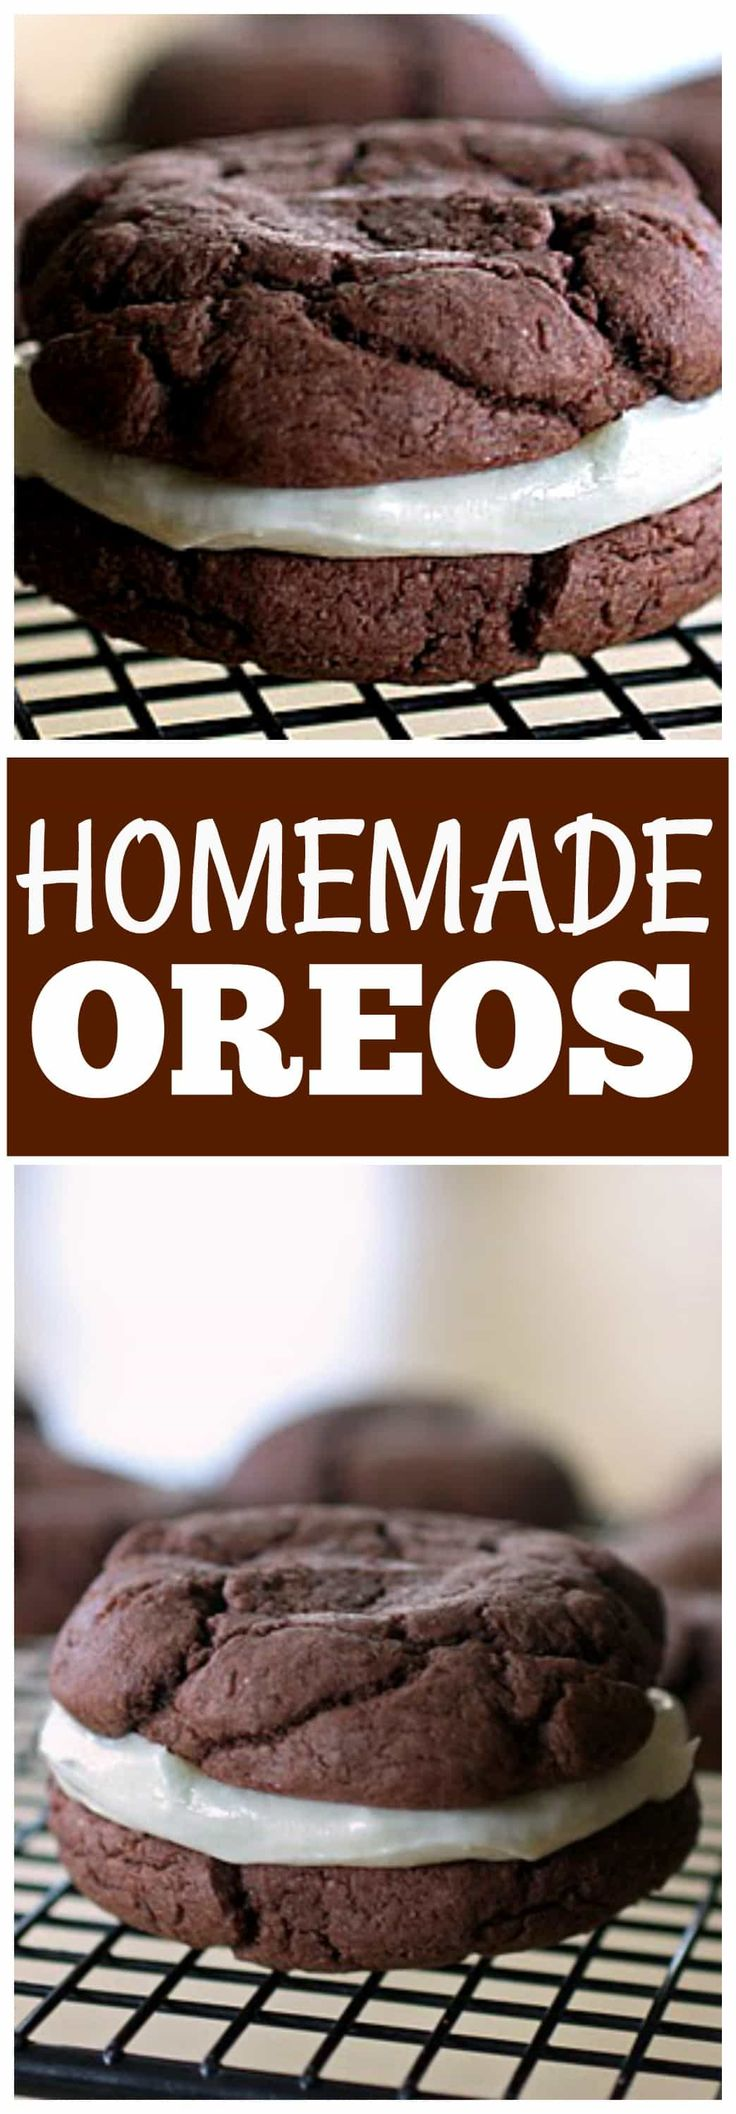 These Homemade Oreos are devil's food cake sandwich cookies with a cream cheese frosting inside. the-girl-who-ate-everything.com